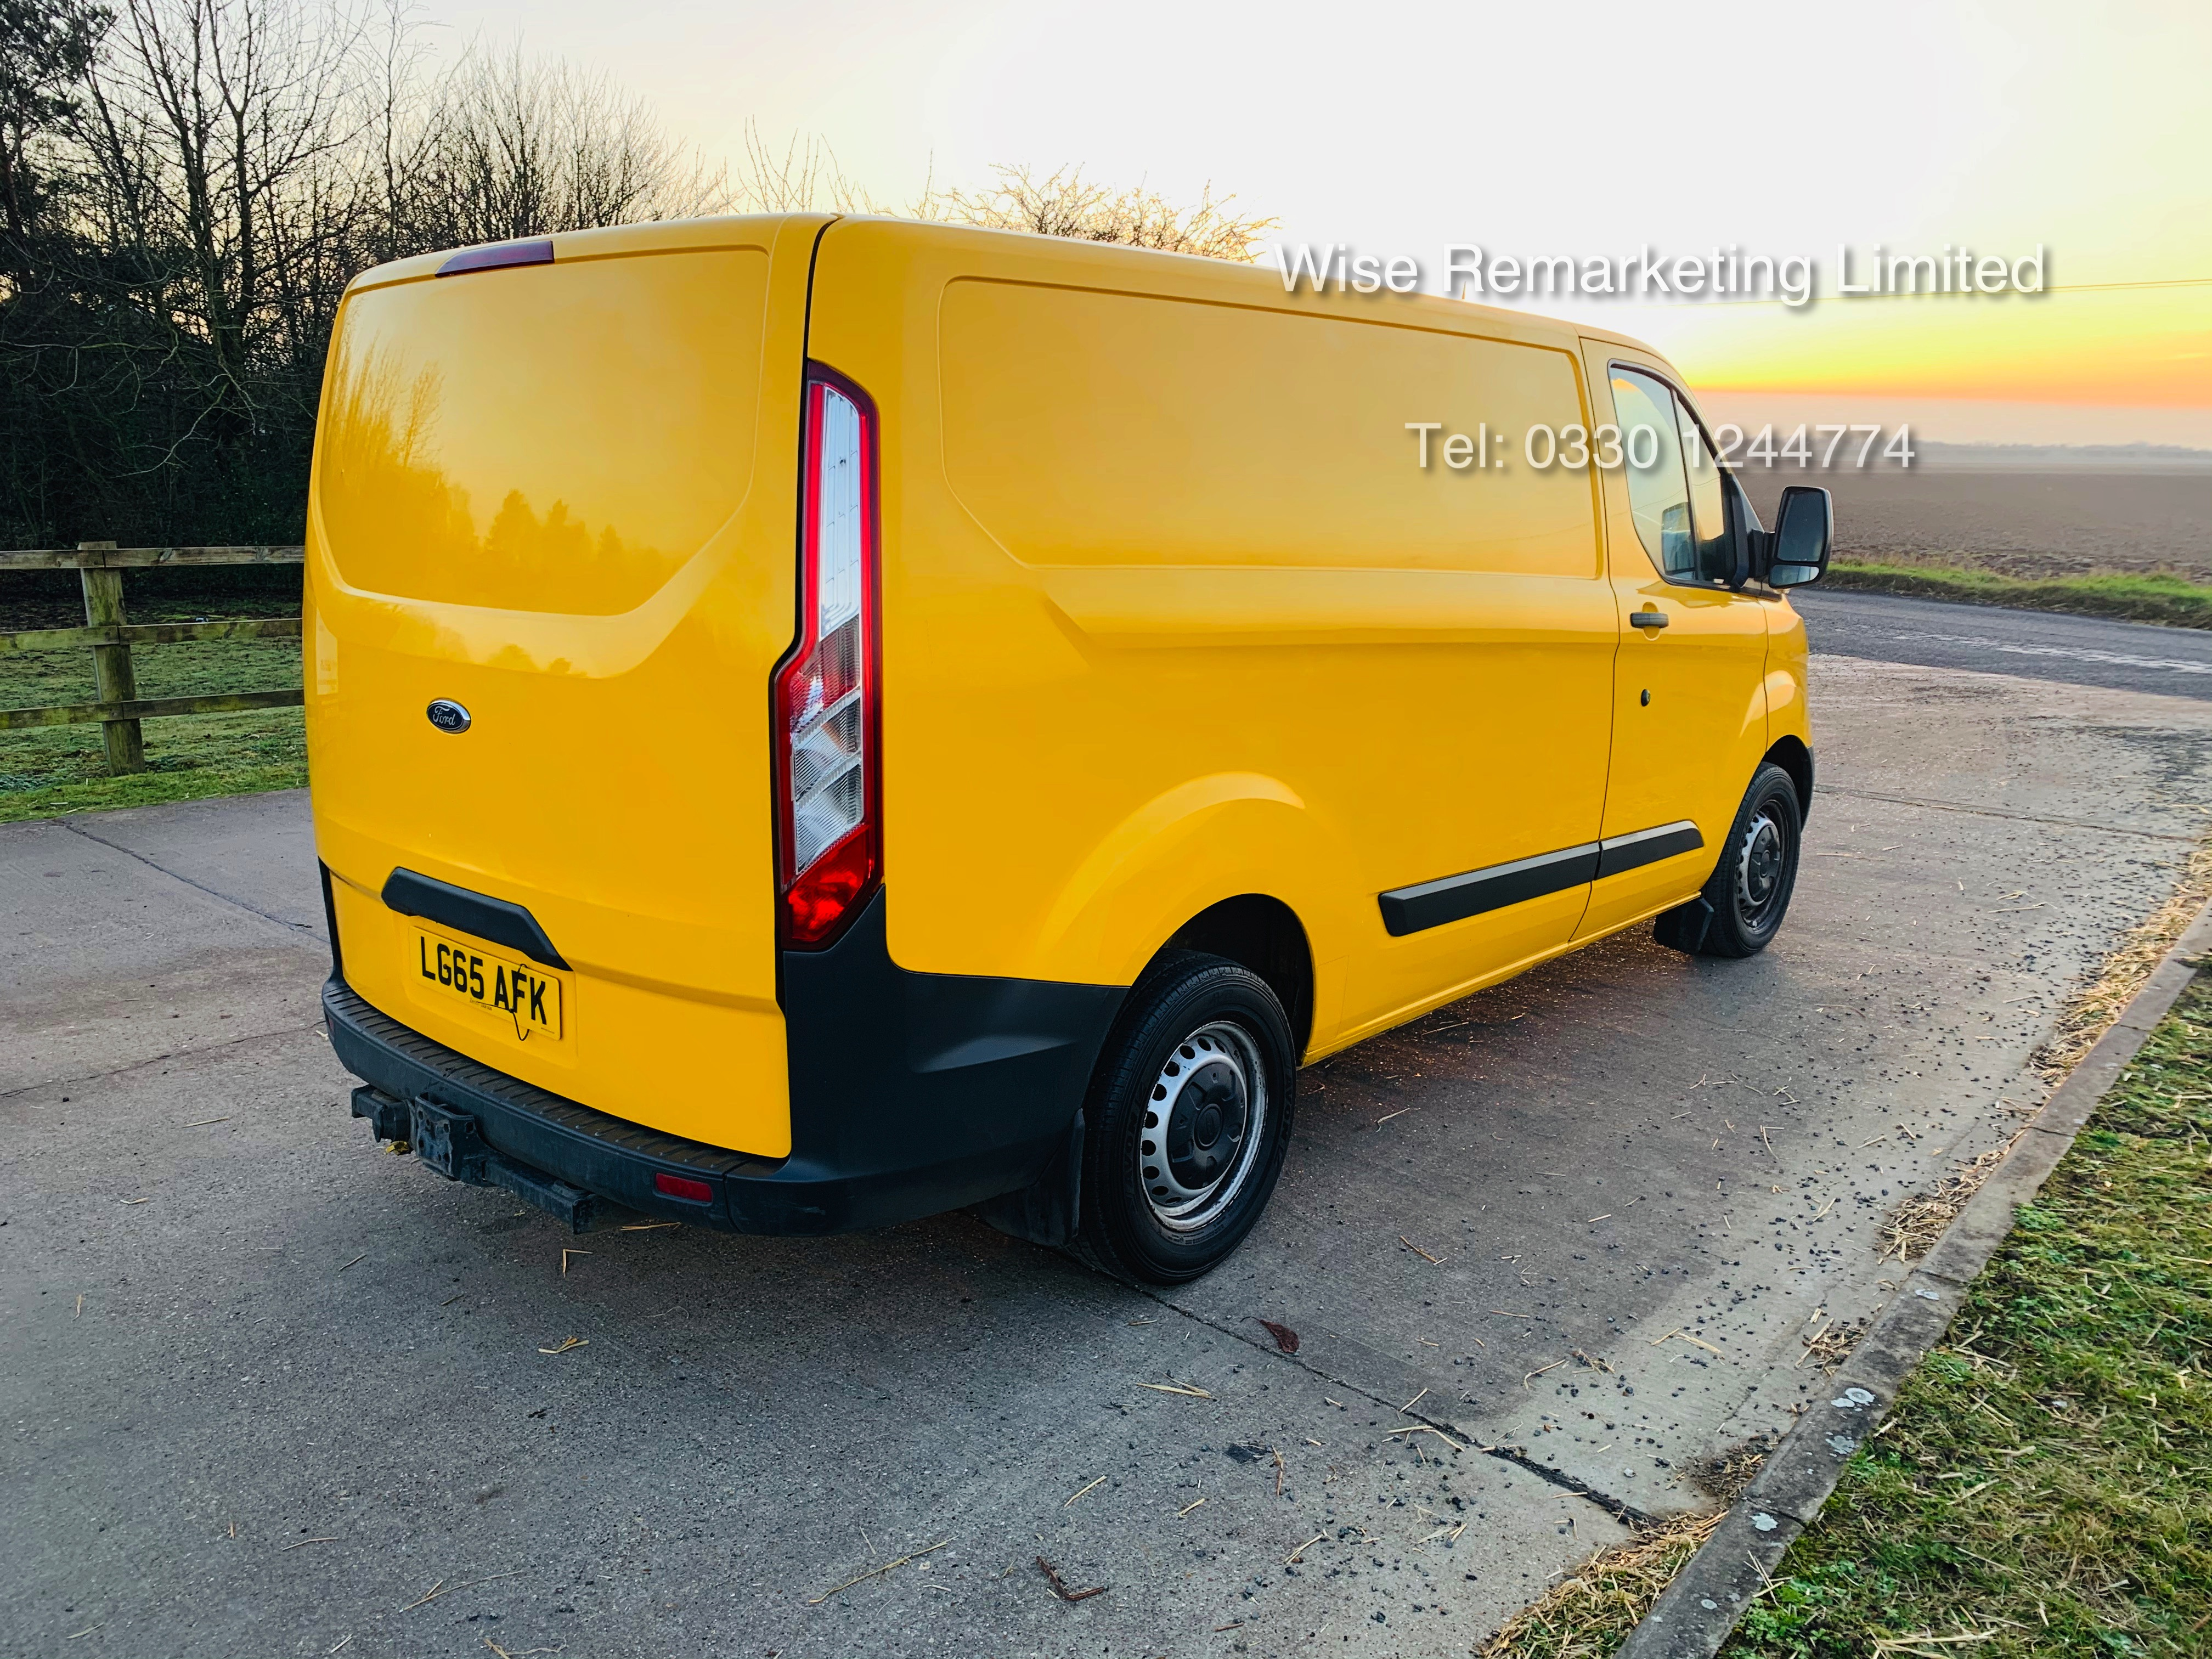 Ford Transit Custom 2.2 TDCI 310 Eco-Tech - 2016 Model - 1 Keeper From New - Air Con - Ex AA Van - Image 7 of 23